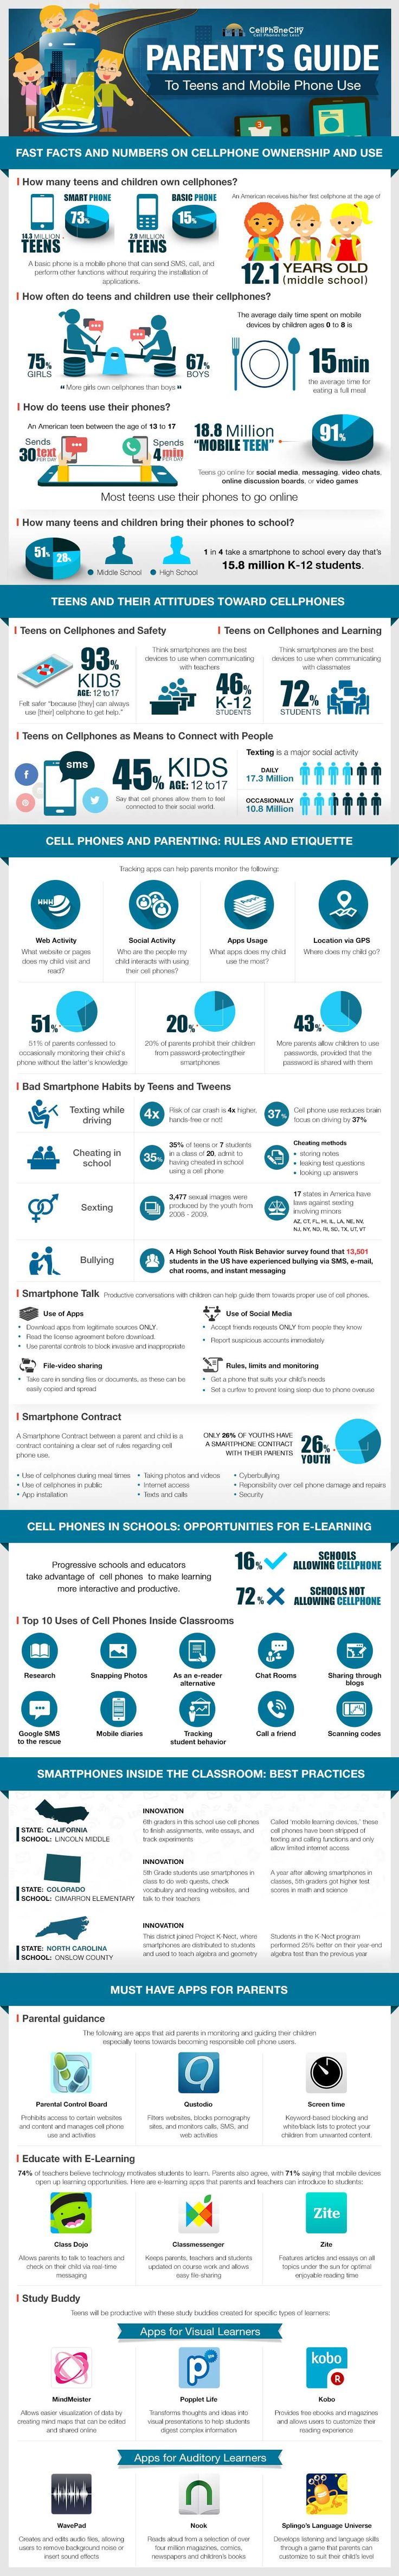 Check out the Parents' Guide to Teens and Mobile Phone Use Infographic to know about teens & their attitude towards cellphones & must have apps for parents.